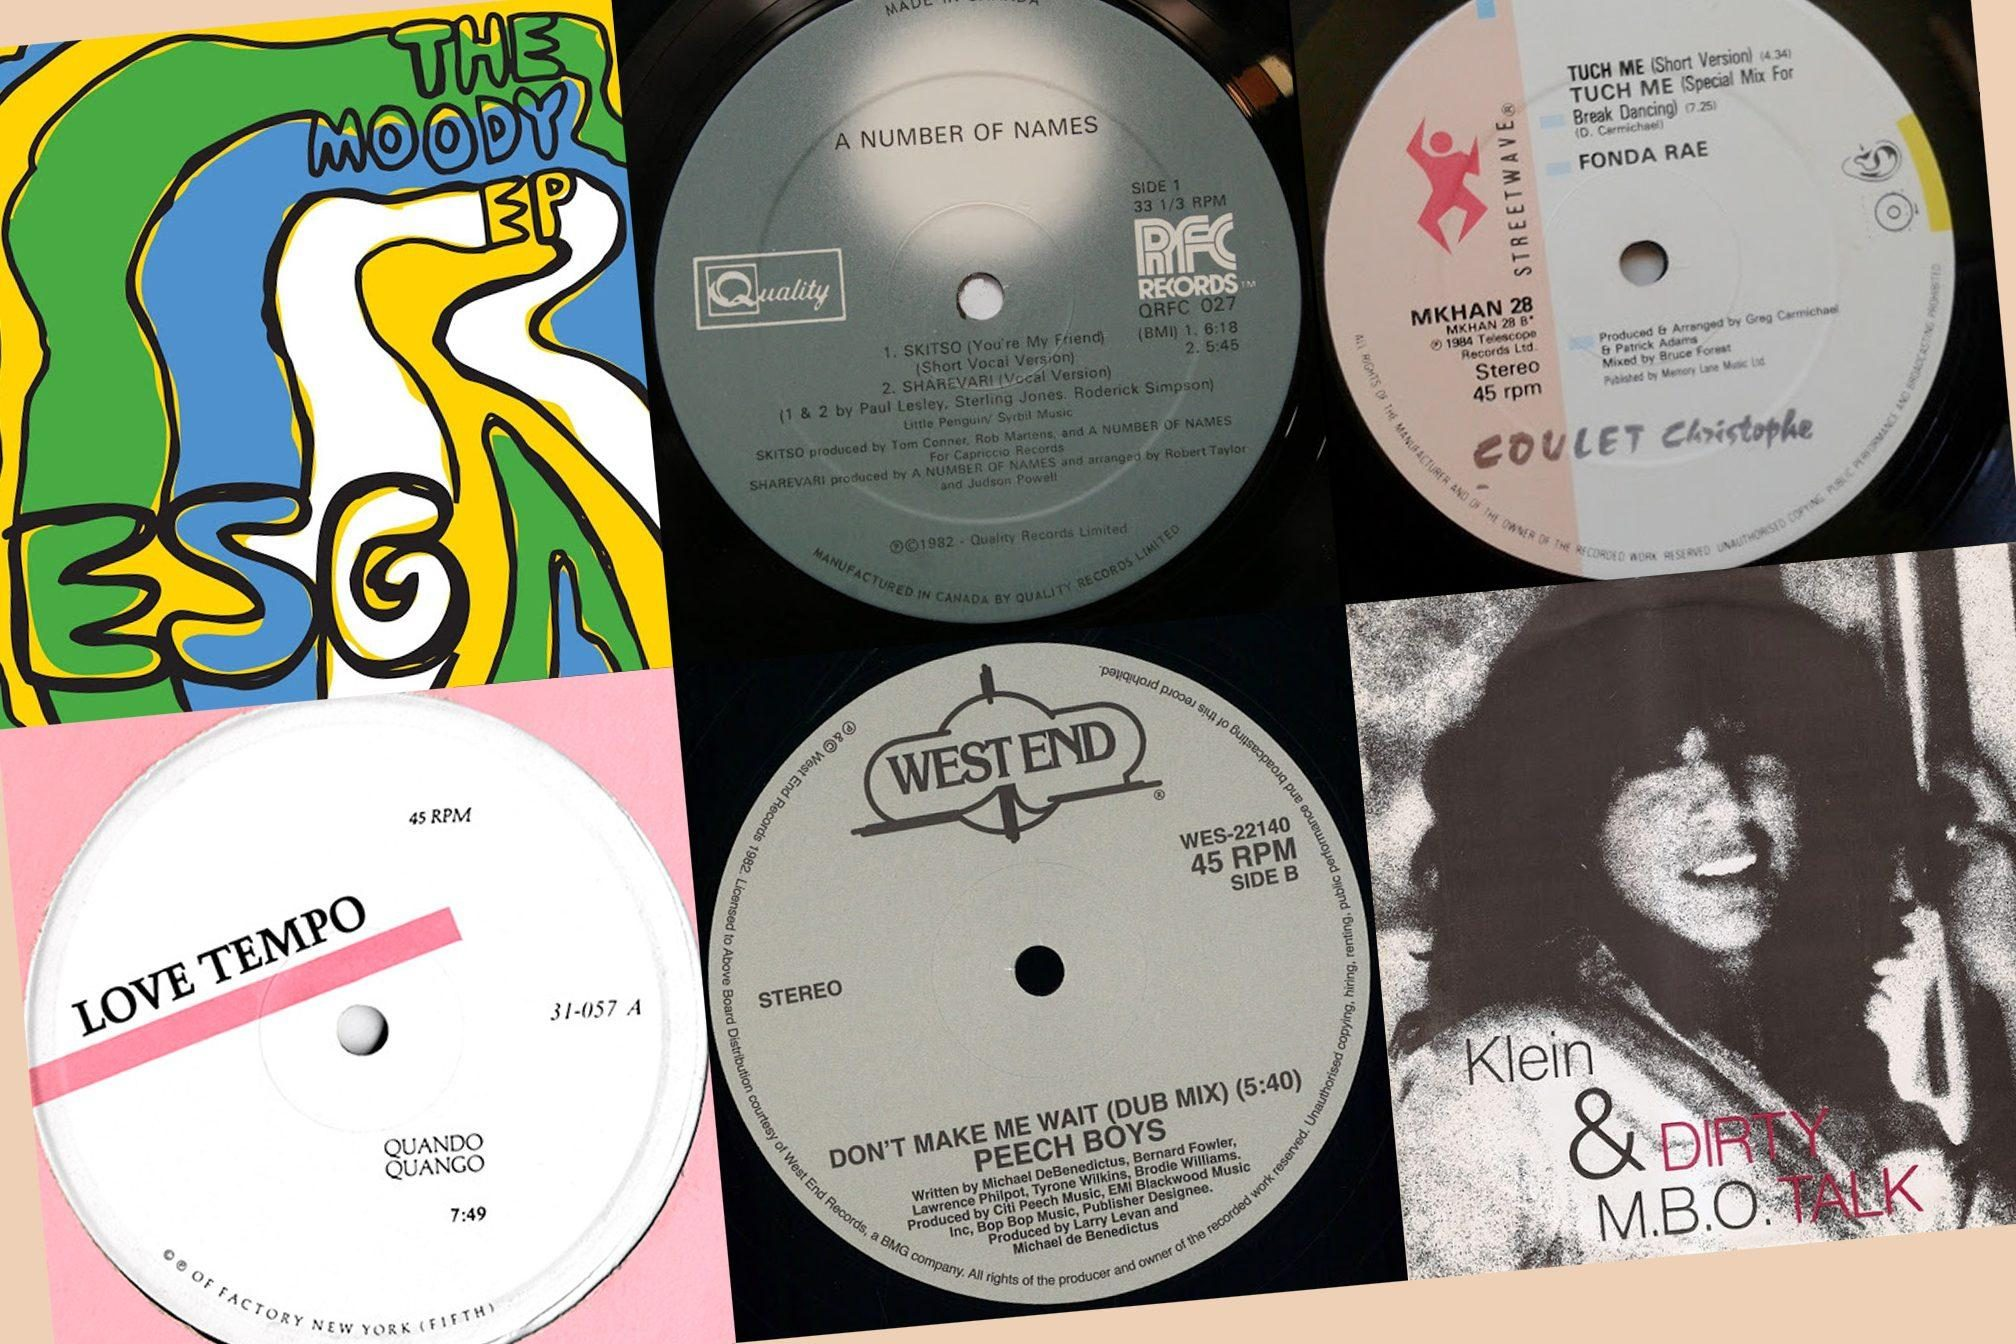 10 early-80s post-disco tracks that helped inspire house